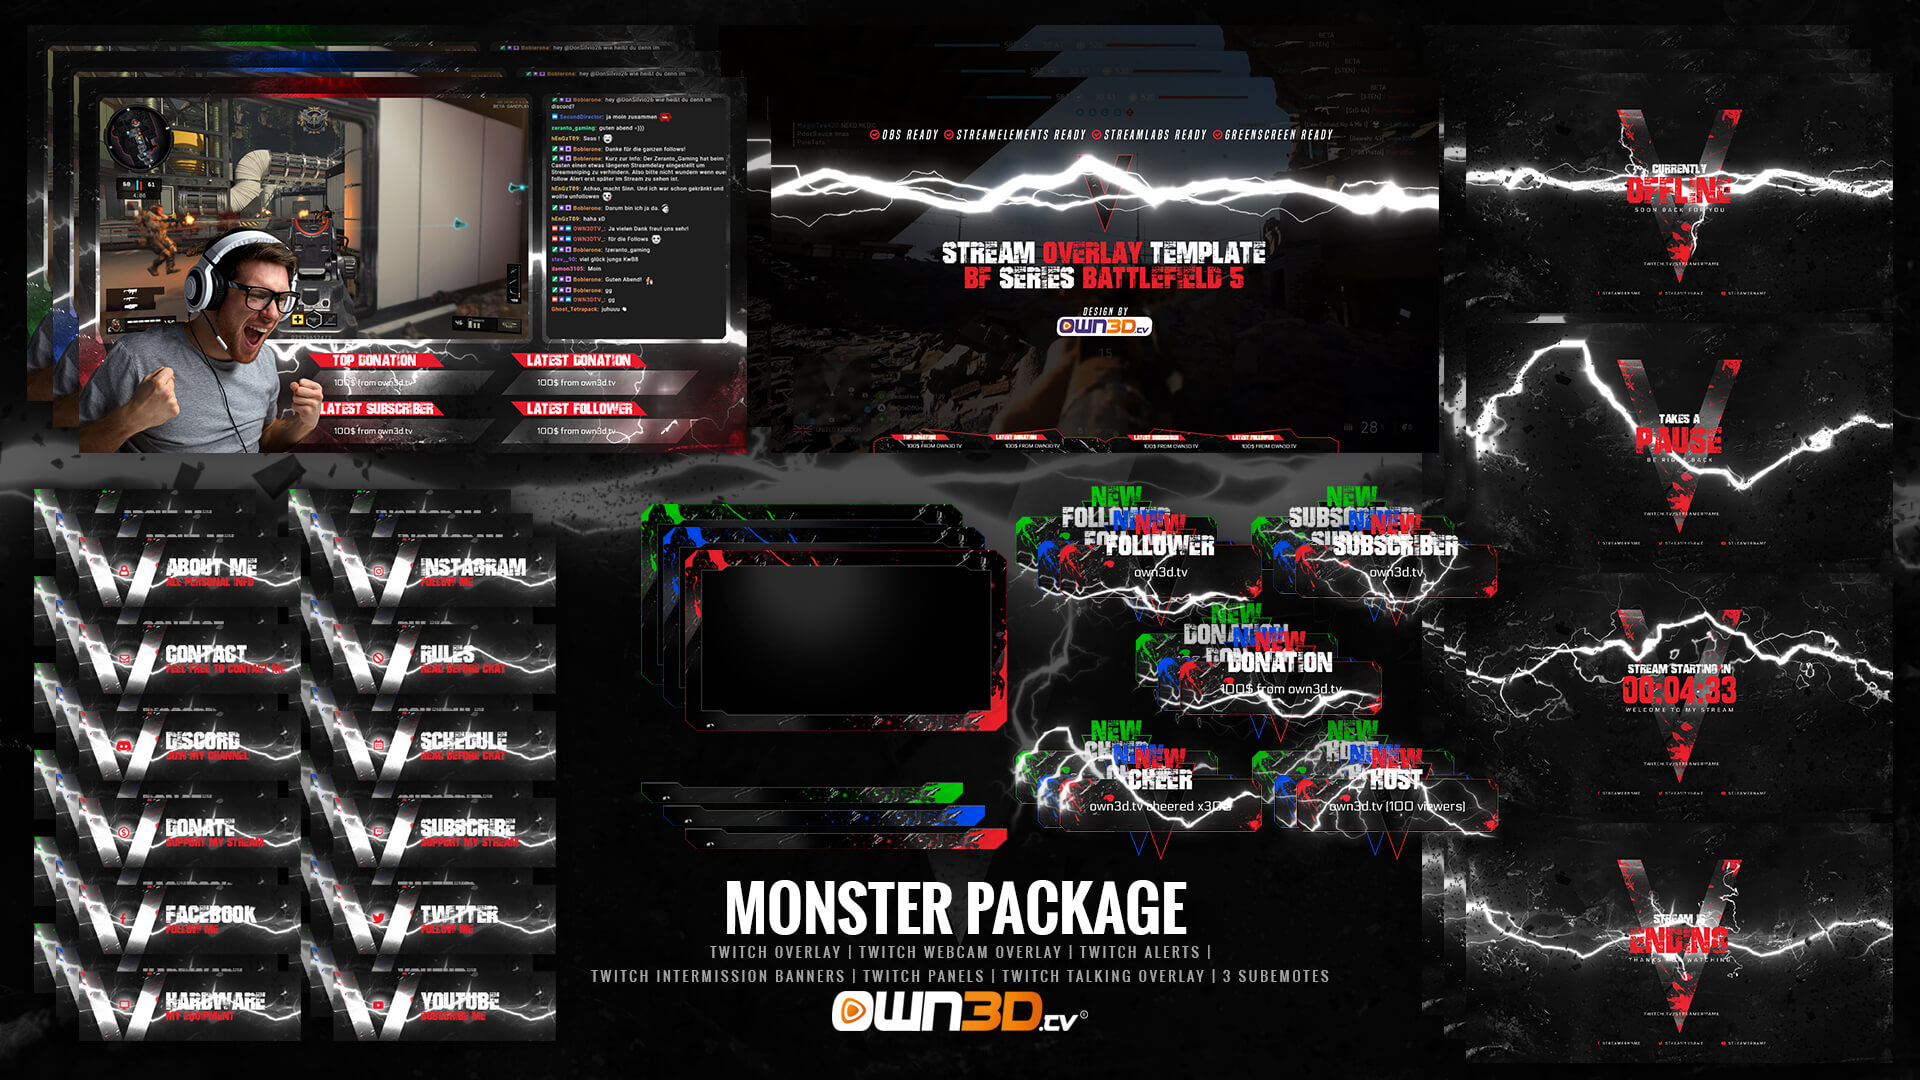 bf-series-ALL-twitch-overlay-package-03-monster.jpg